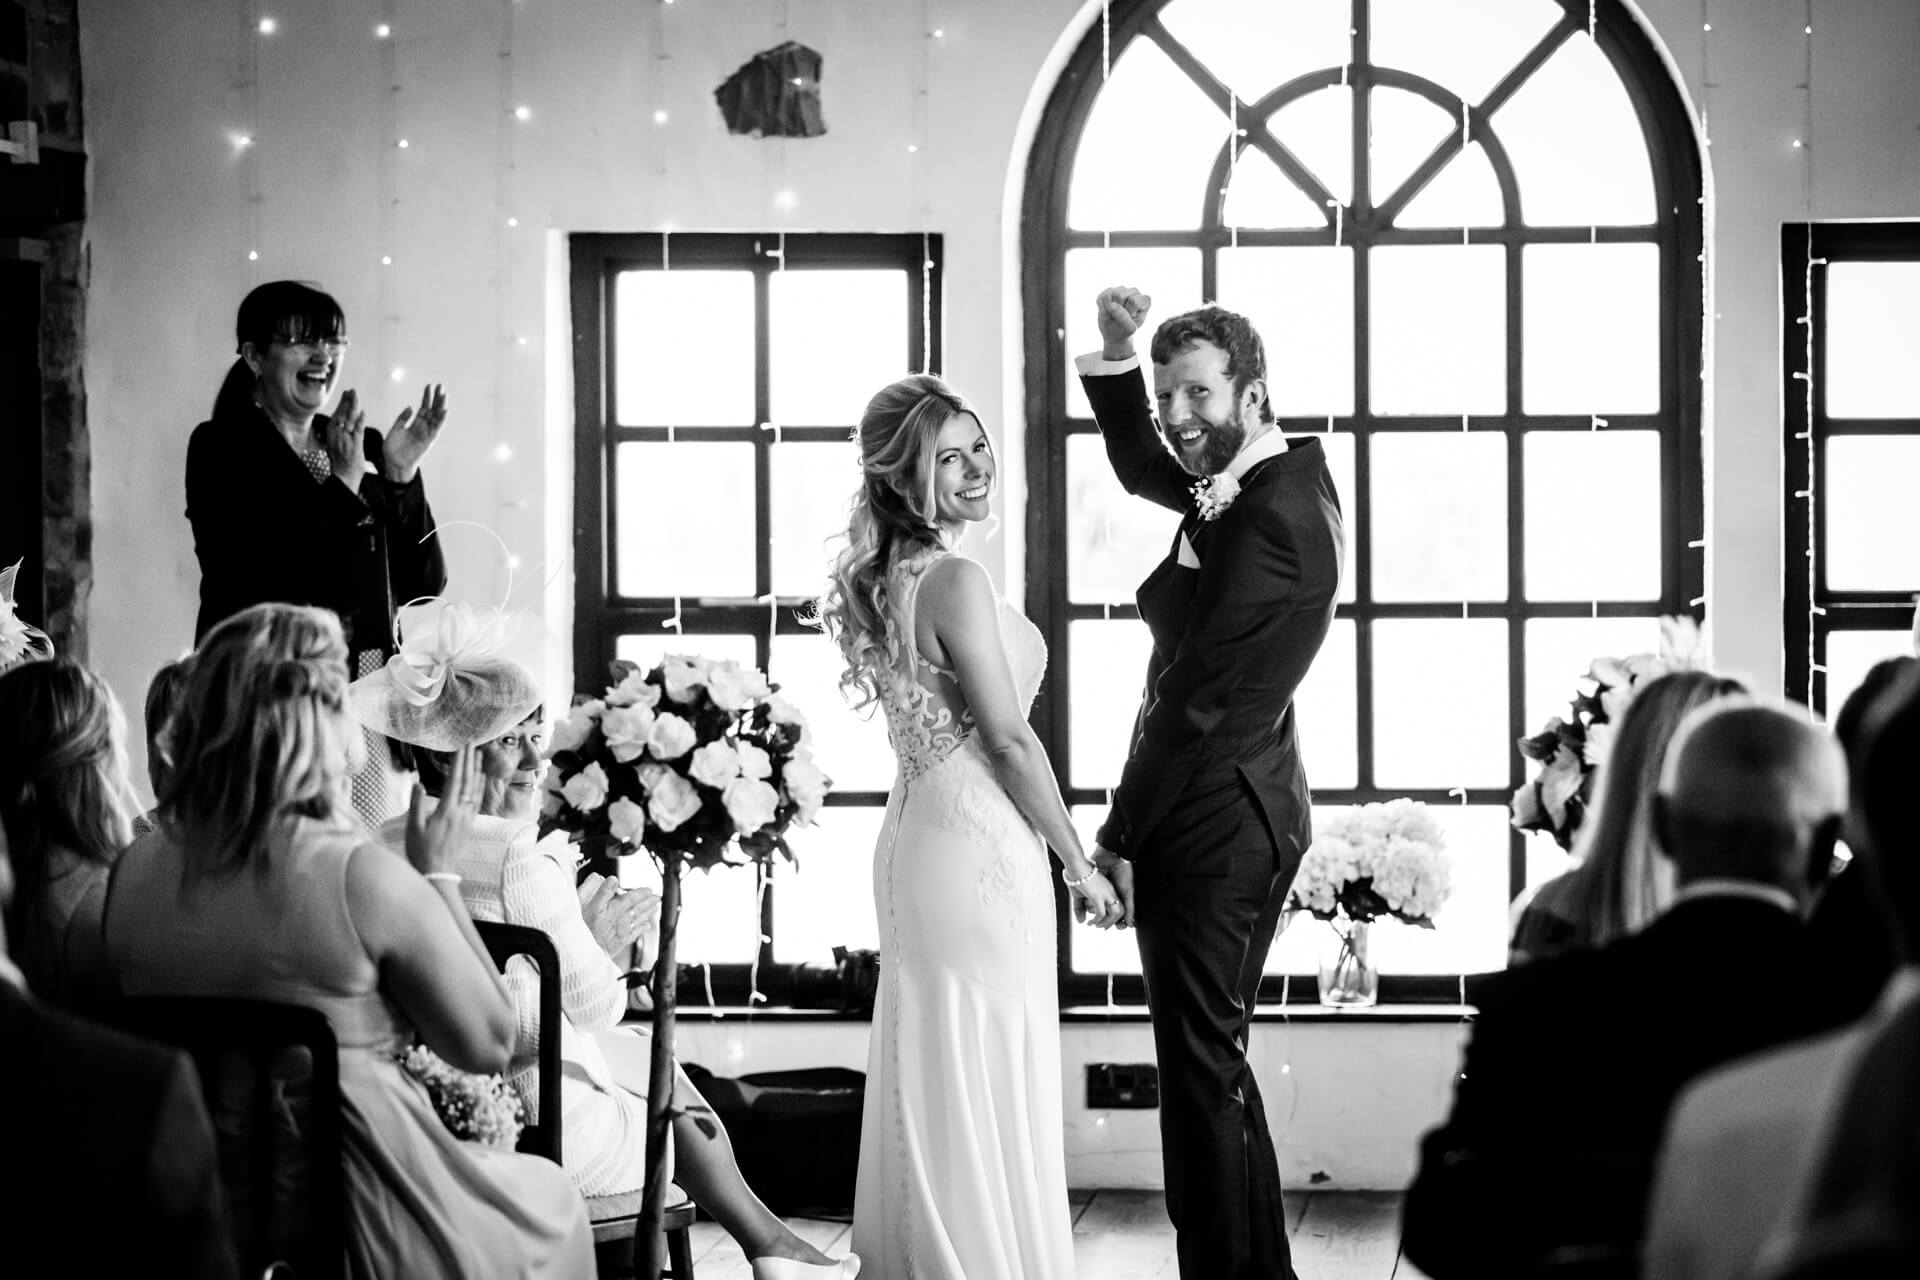 bride and groom smiling at their guests at the end of the ceremony